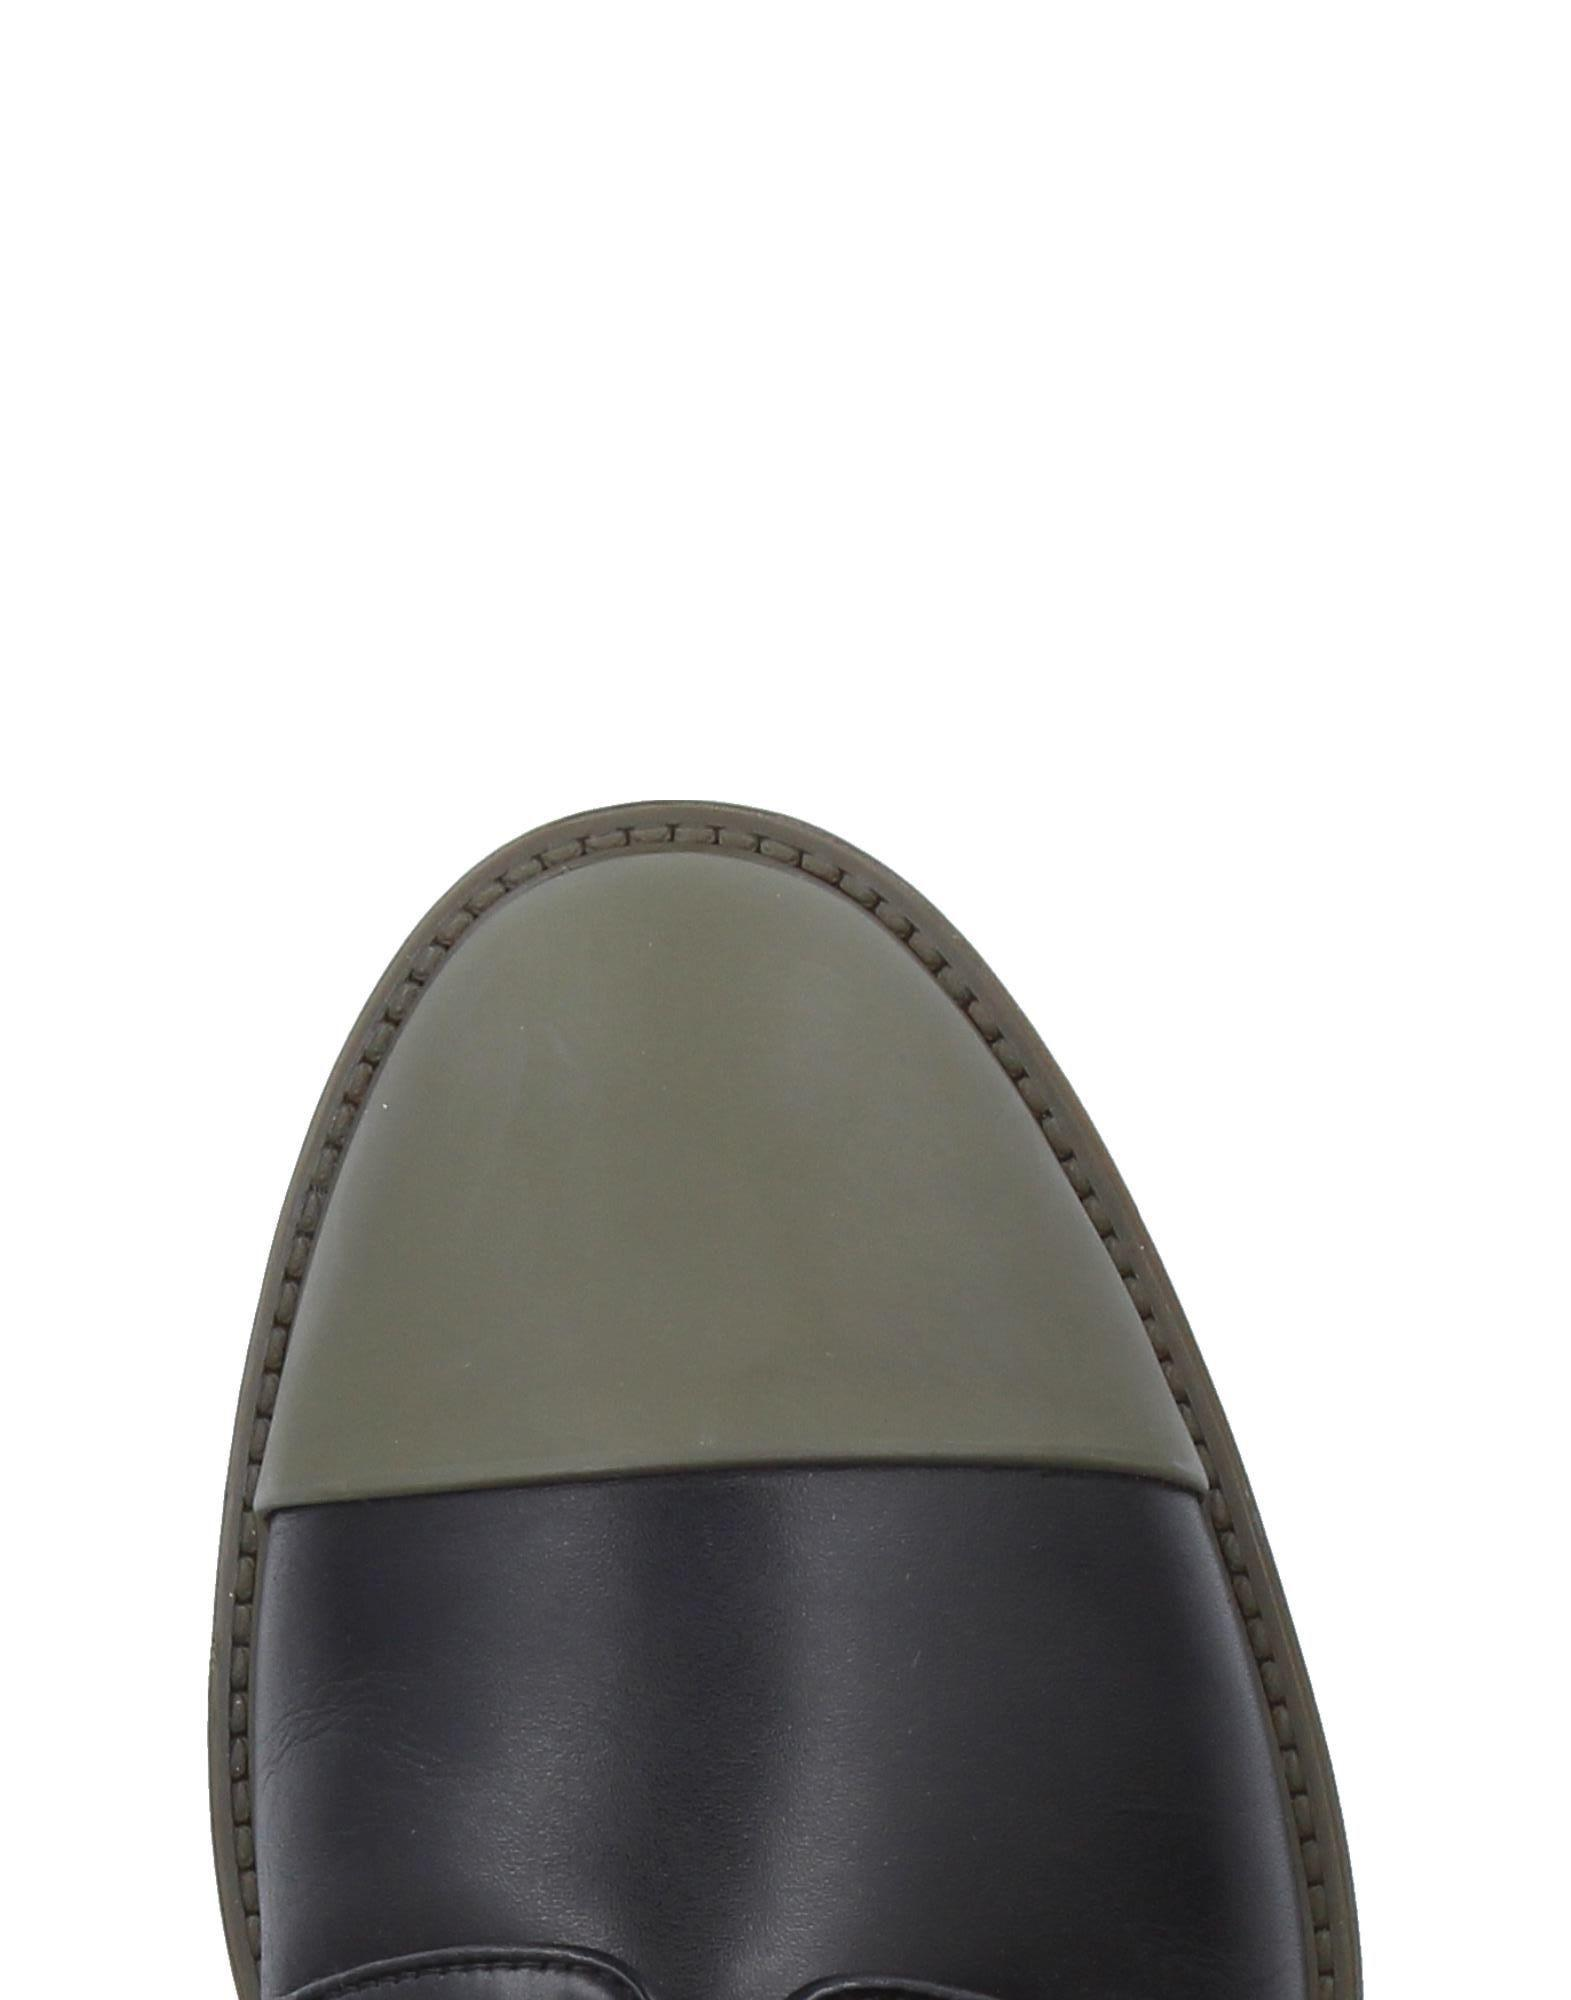 fe61bec063b Lyst - Alberto Guardiani Lace-up Shoe in Green for Men